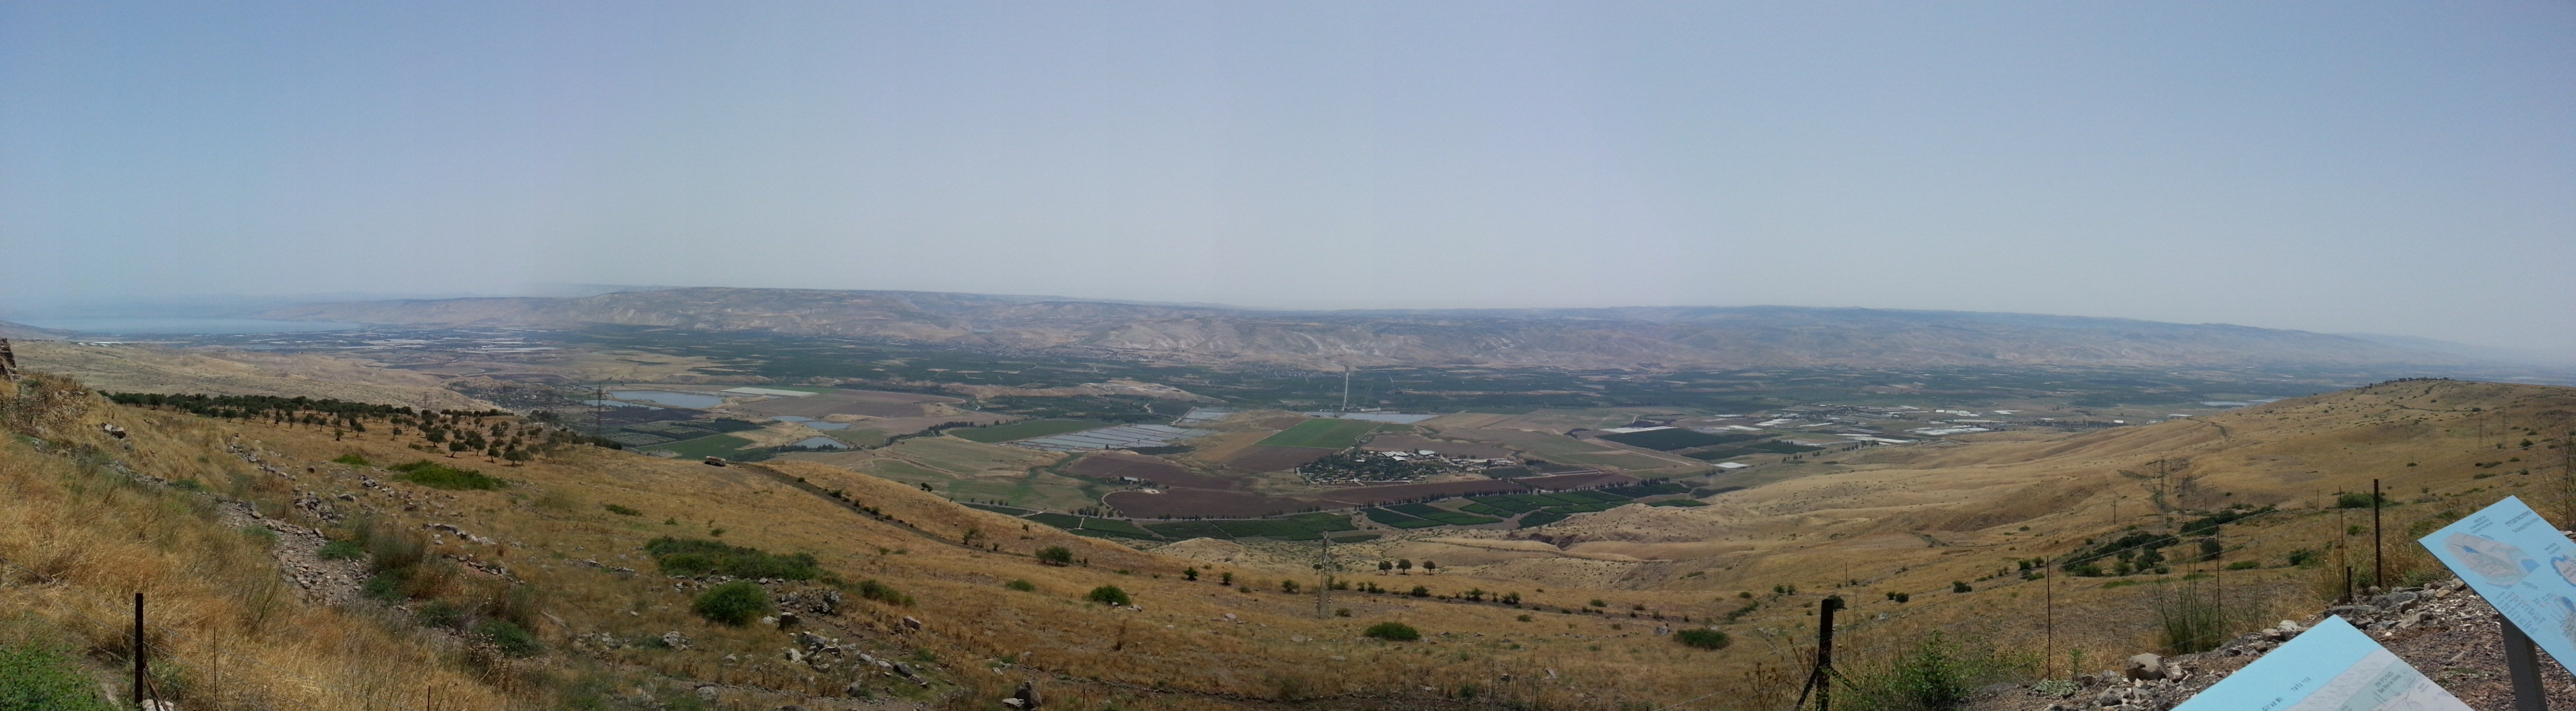 View over the Jordan Valley from Belvoir Crusader Fortress